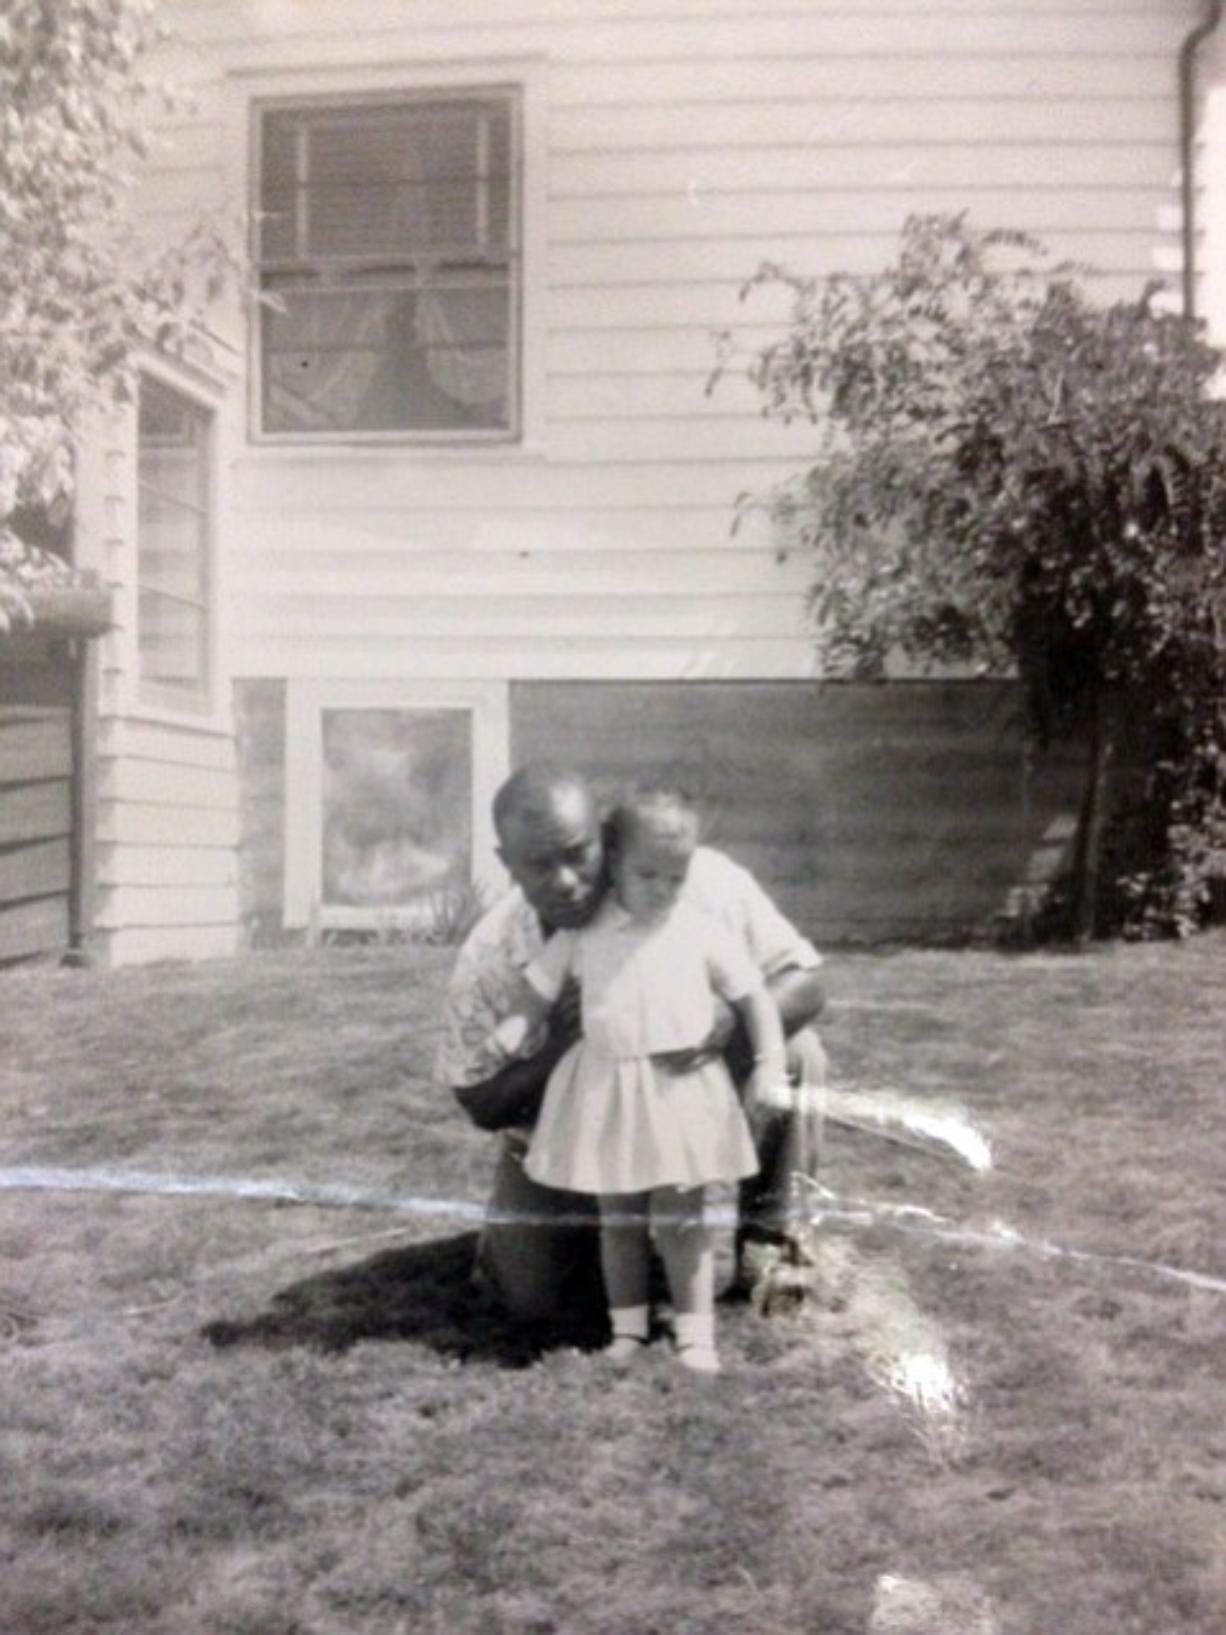 Marie Bruin kept this childhood photo of herself and her adoptive father on her desk at work.